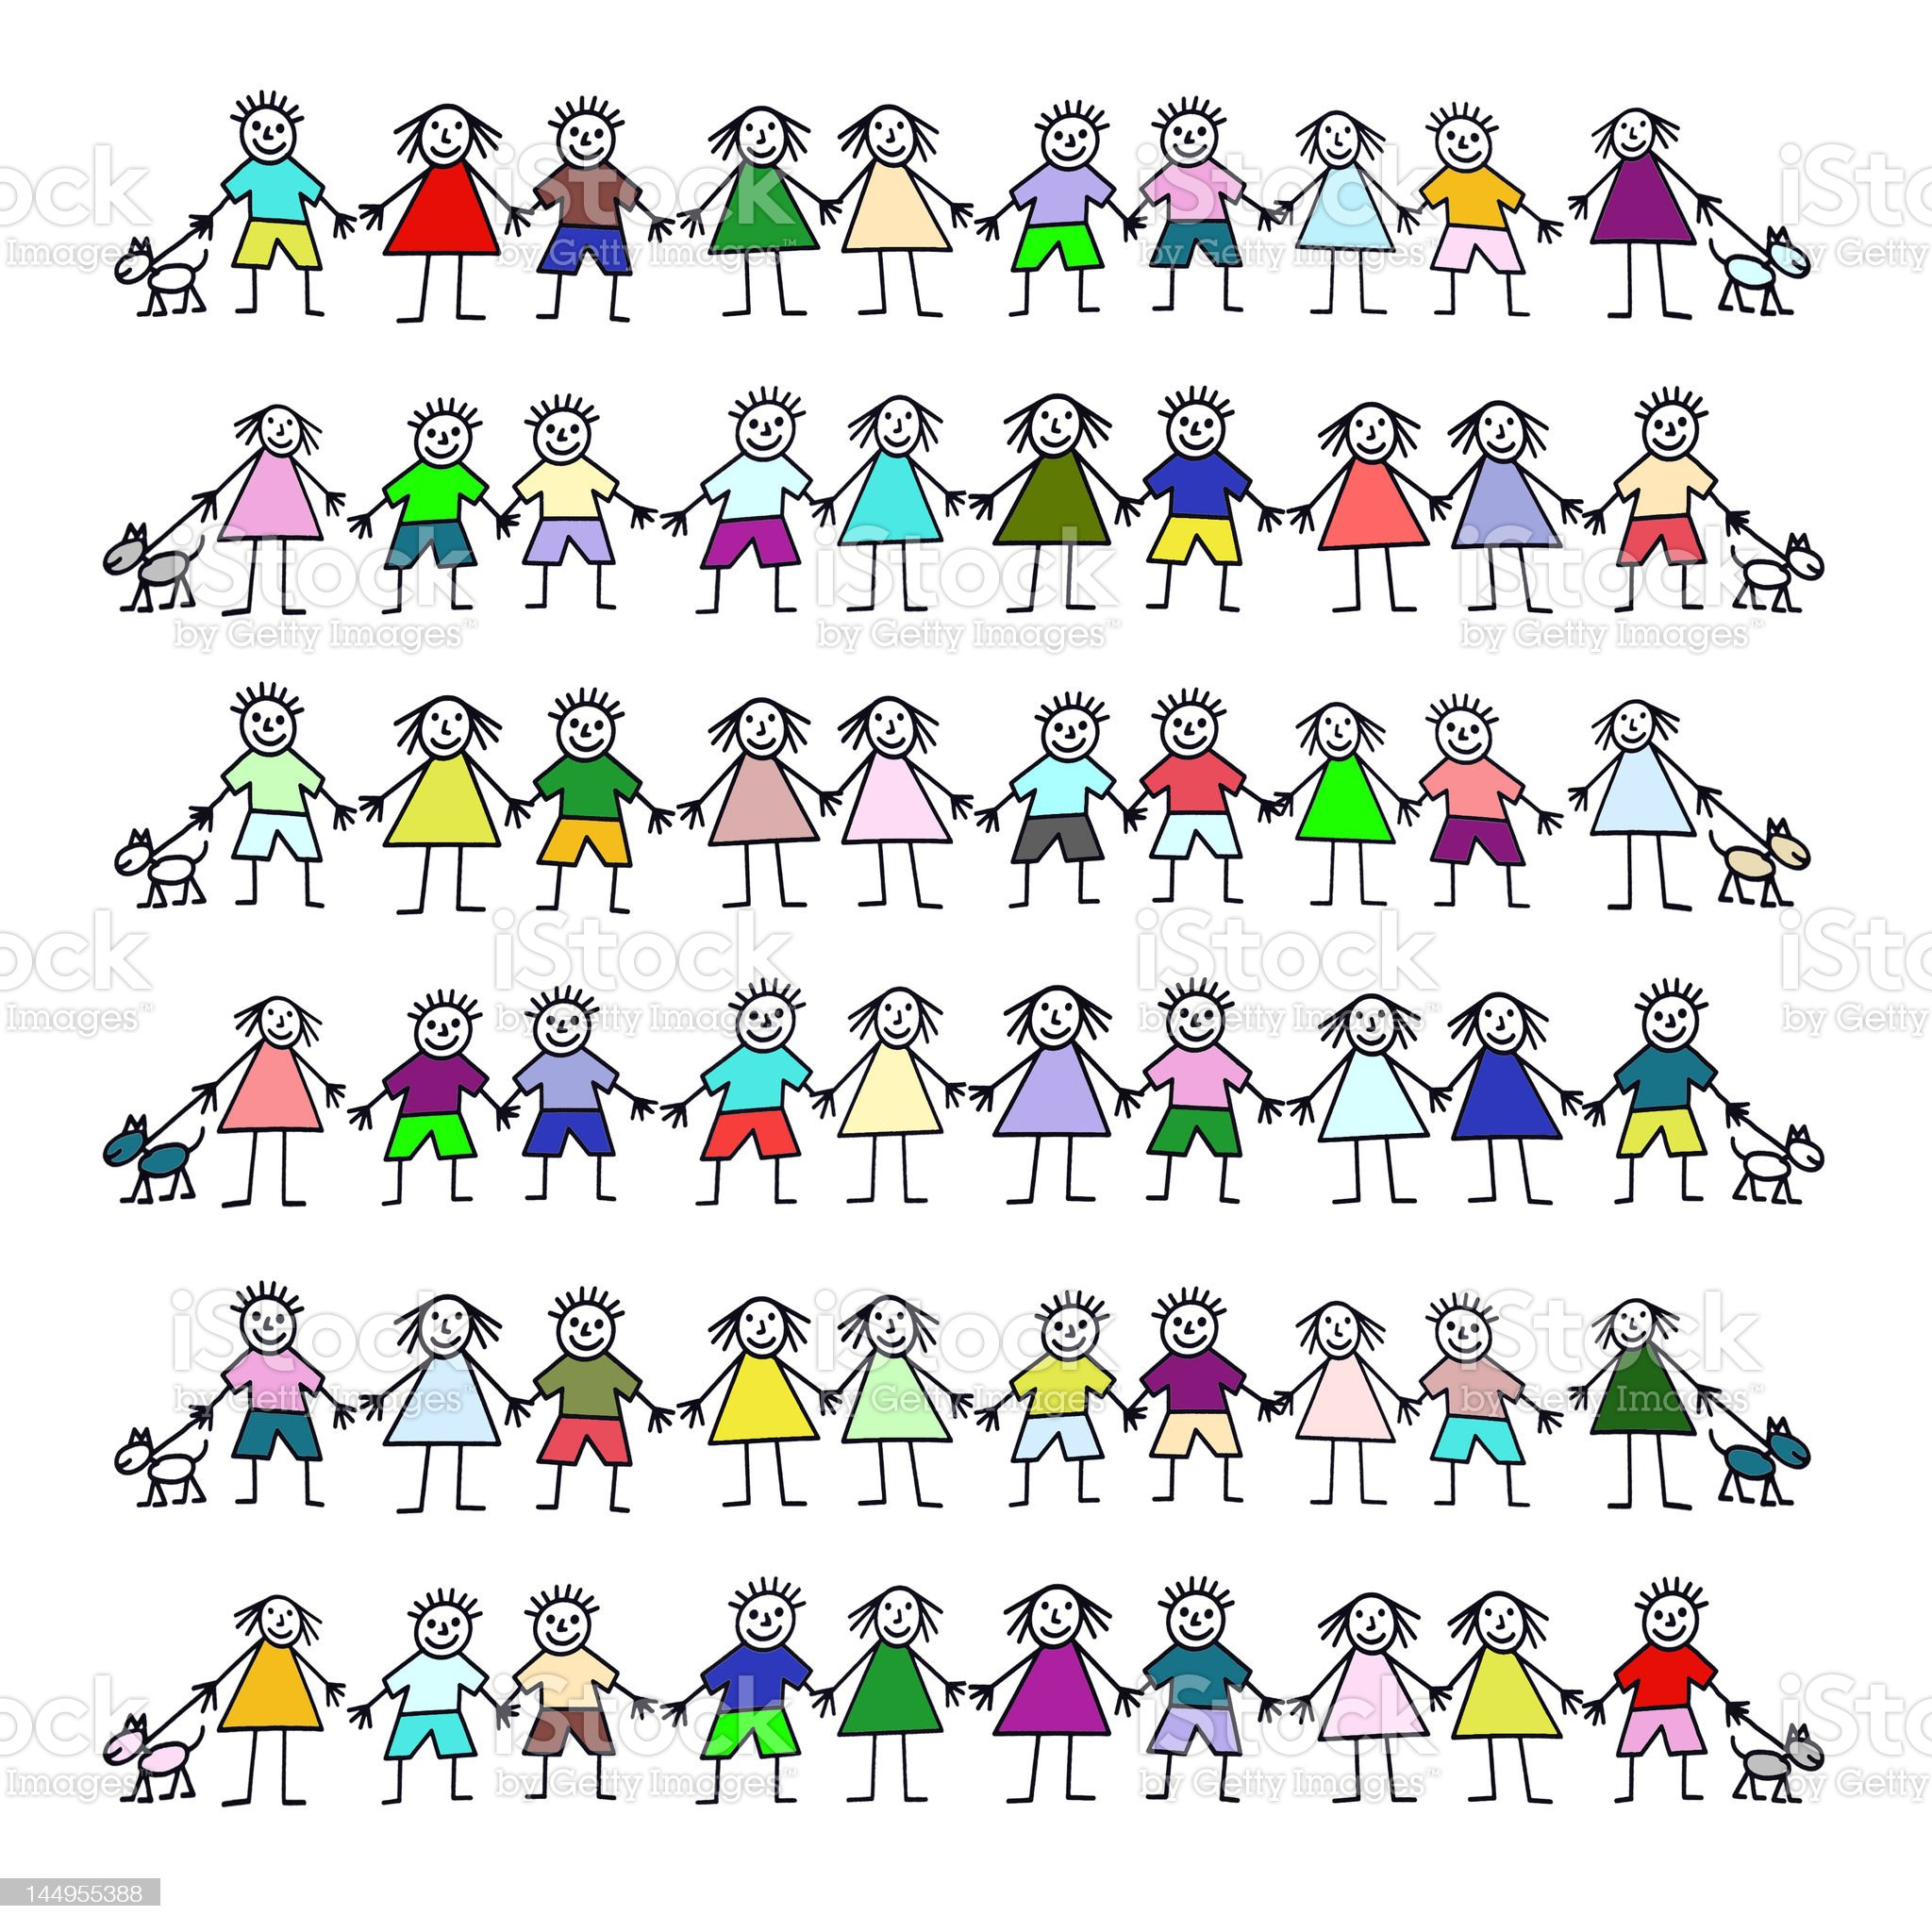 Kiddies with dogs royalty-free stock vector art